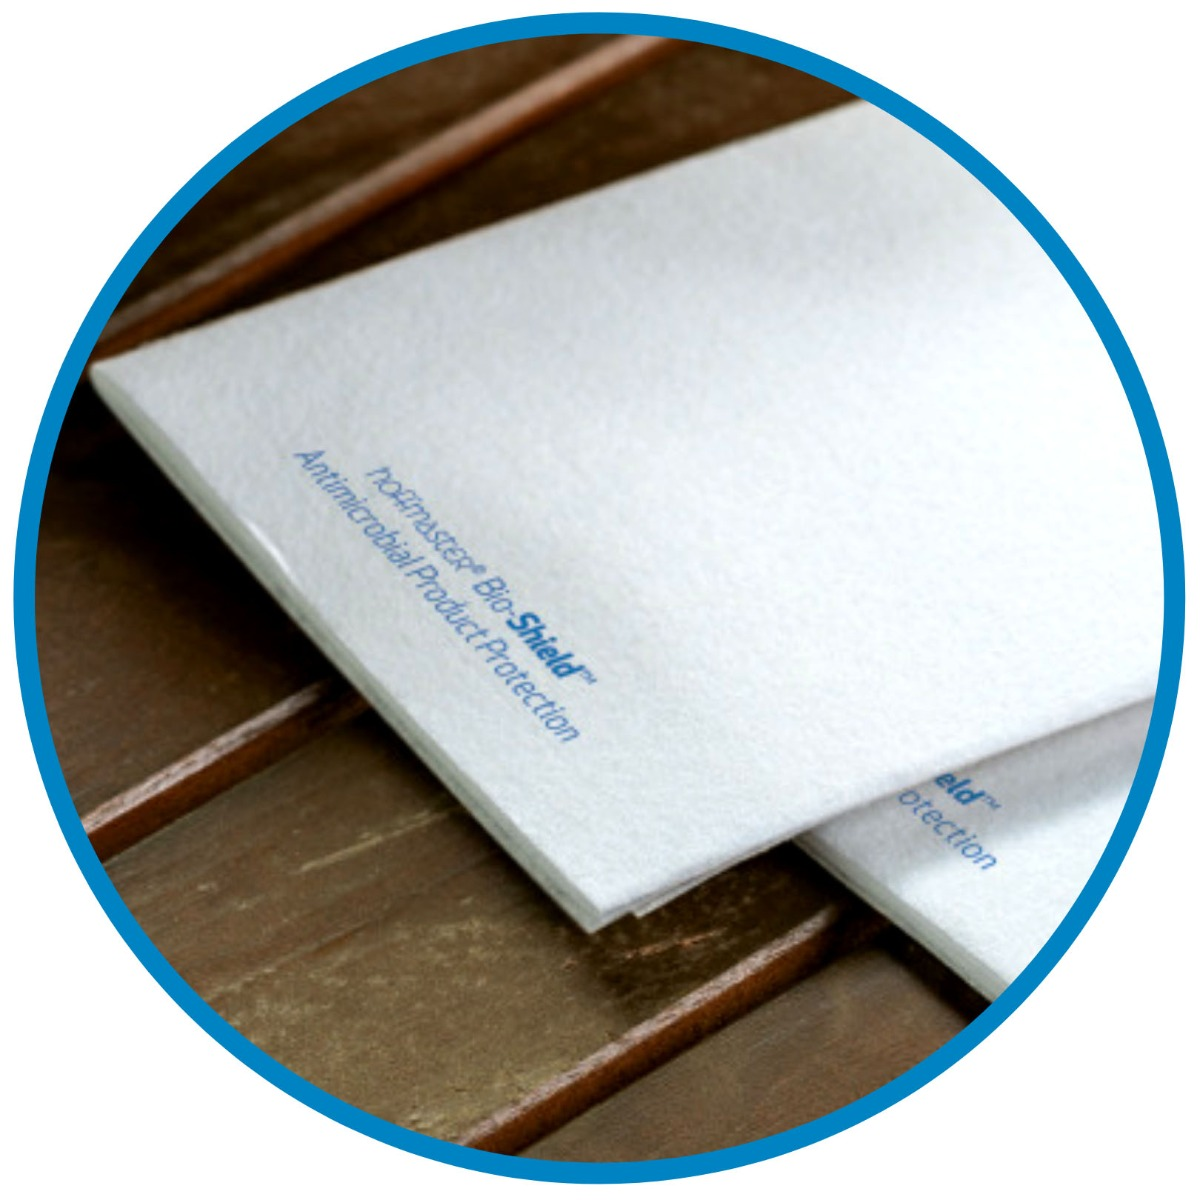 Bio-Shield Antimicrobial Product Protection